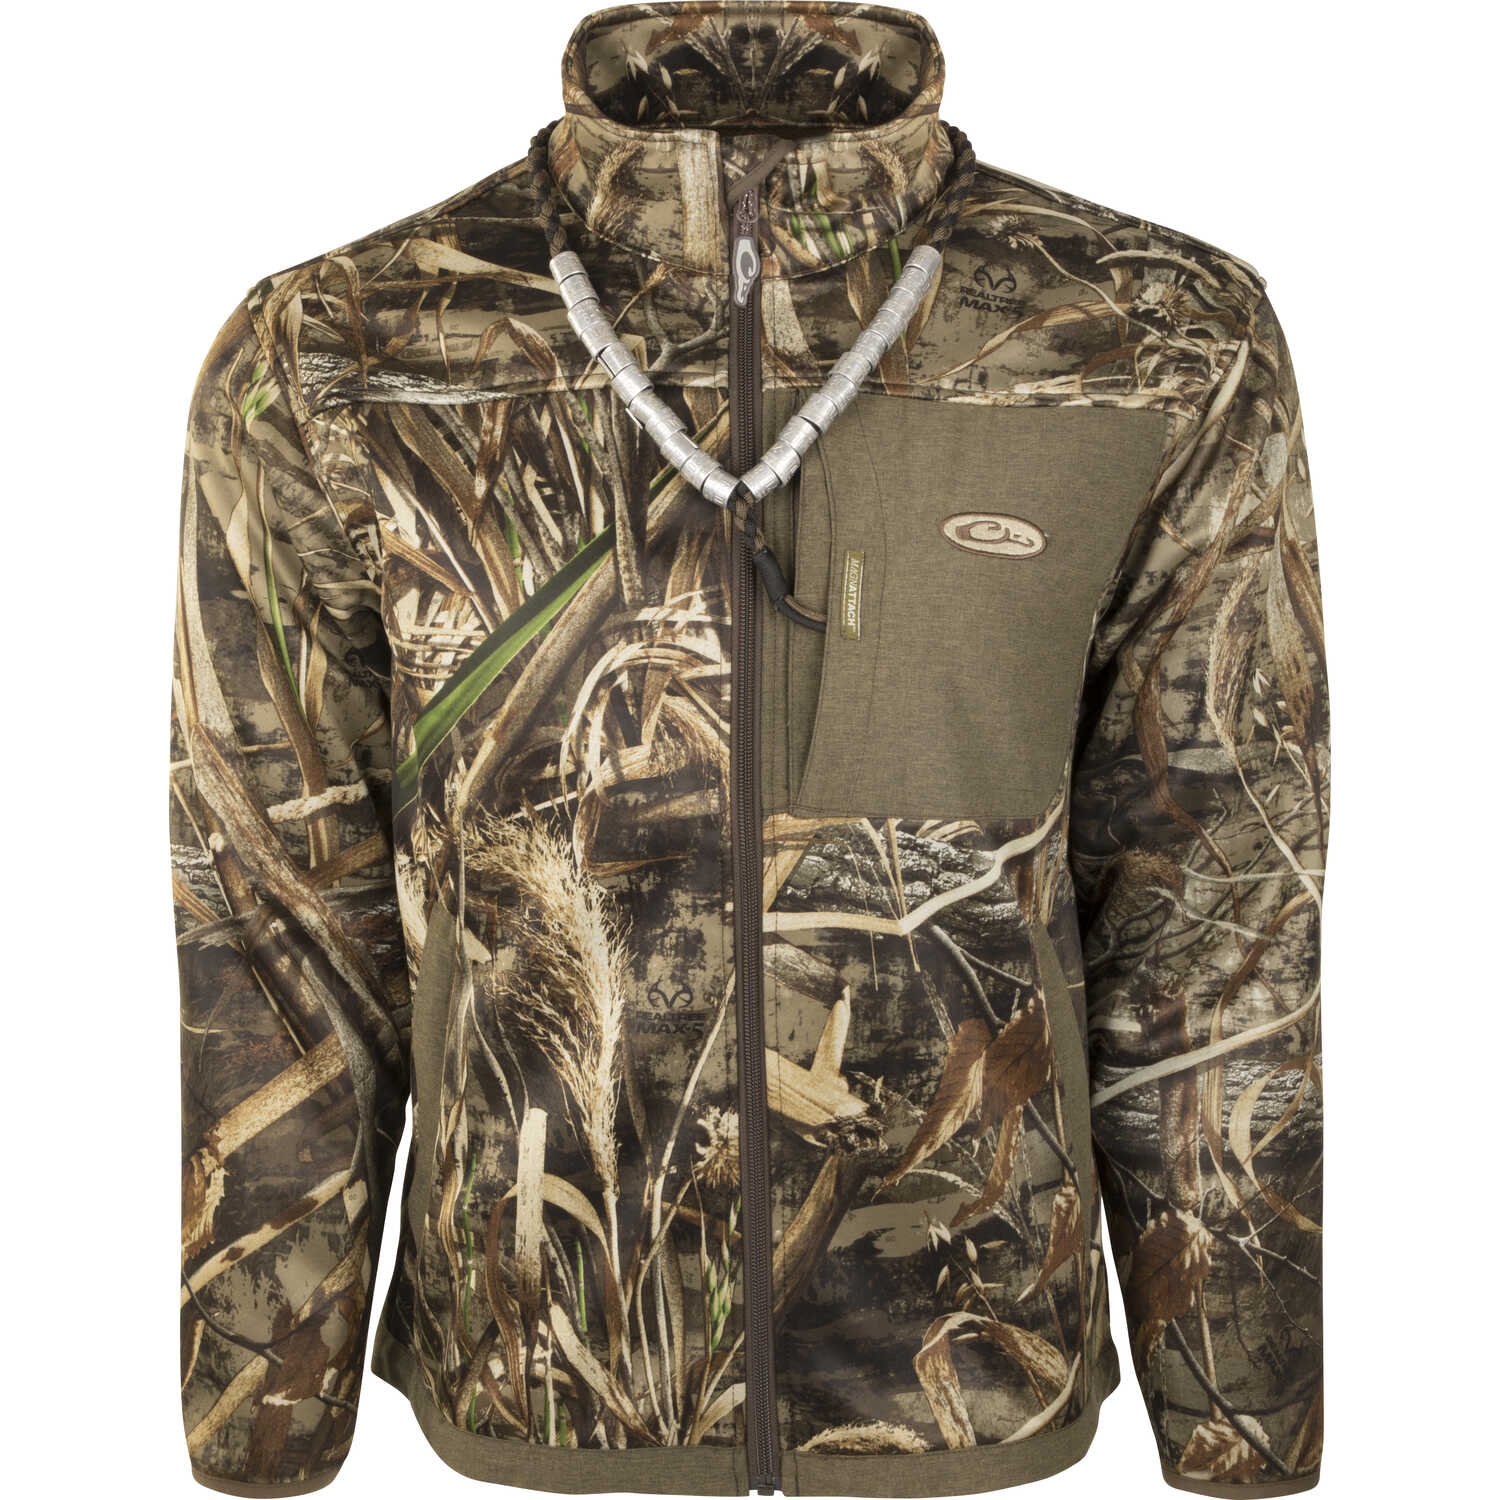 Drake  MST Endurance  XXL  Long Sleeve  Men's  Full-Zip  Liner  Realtree Max-5